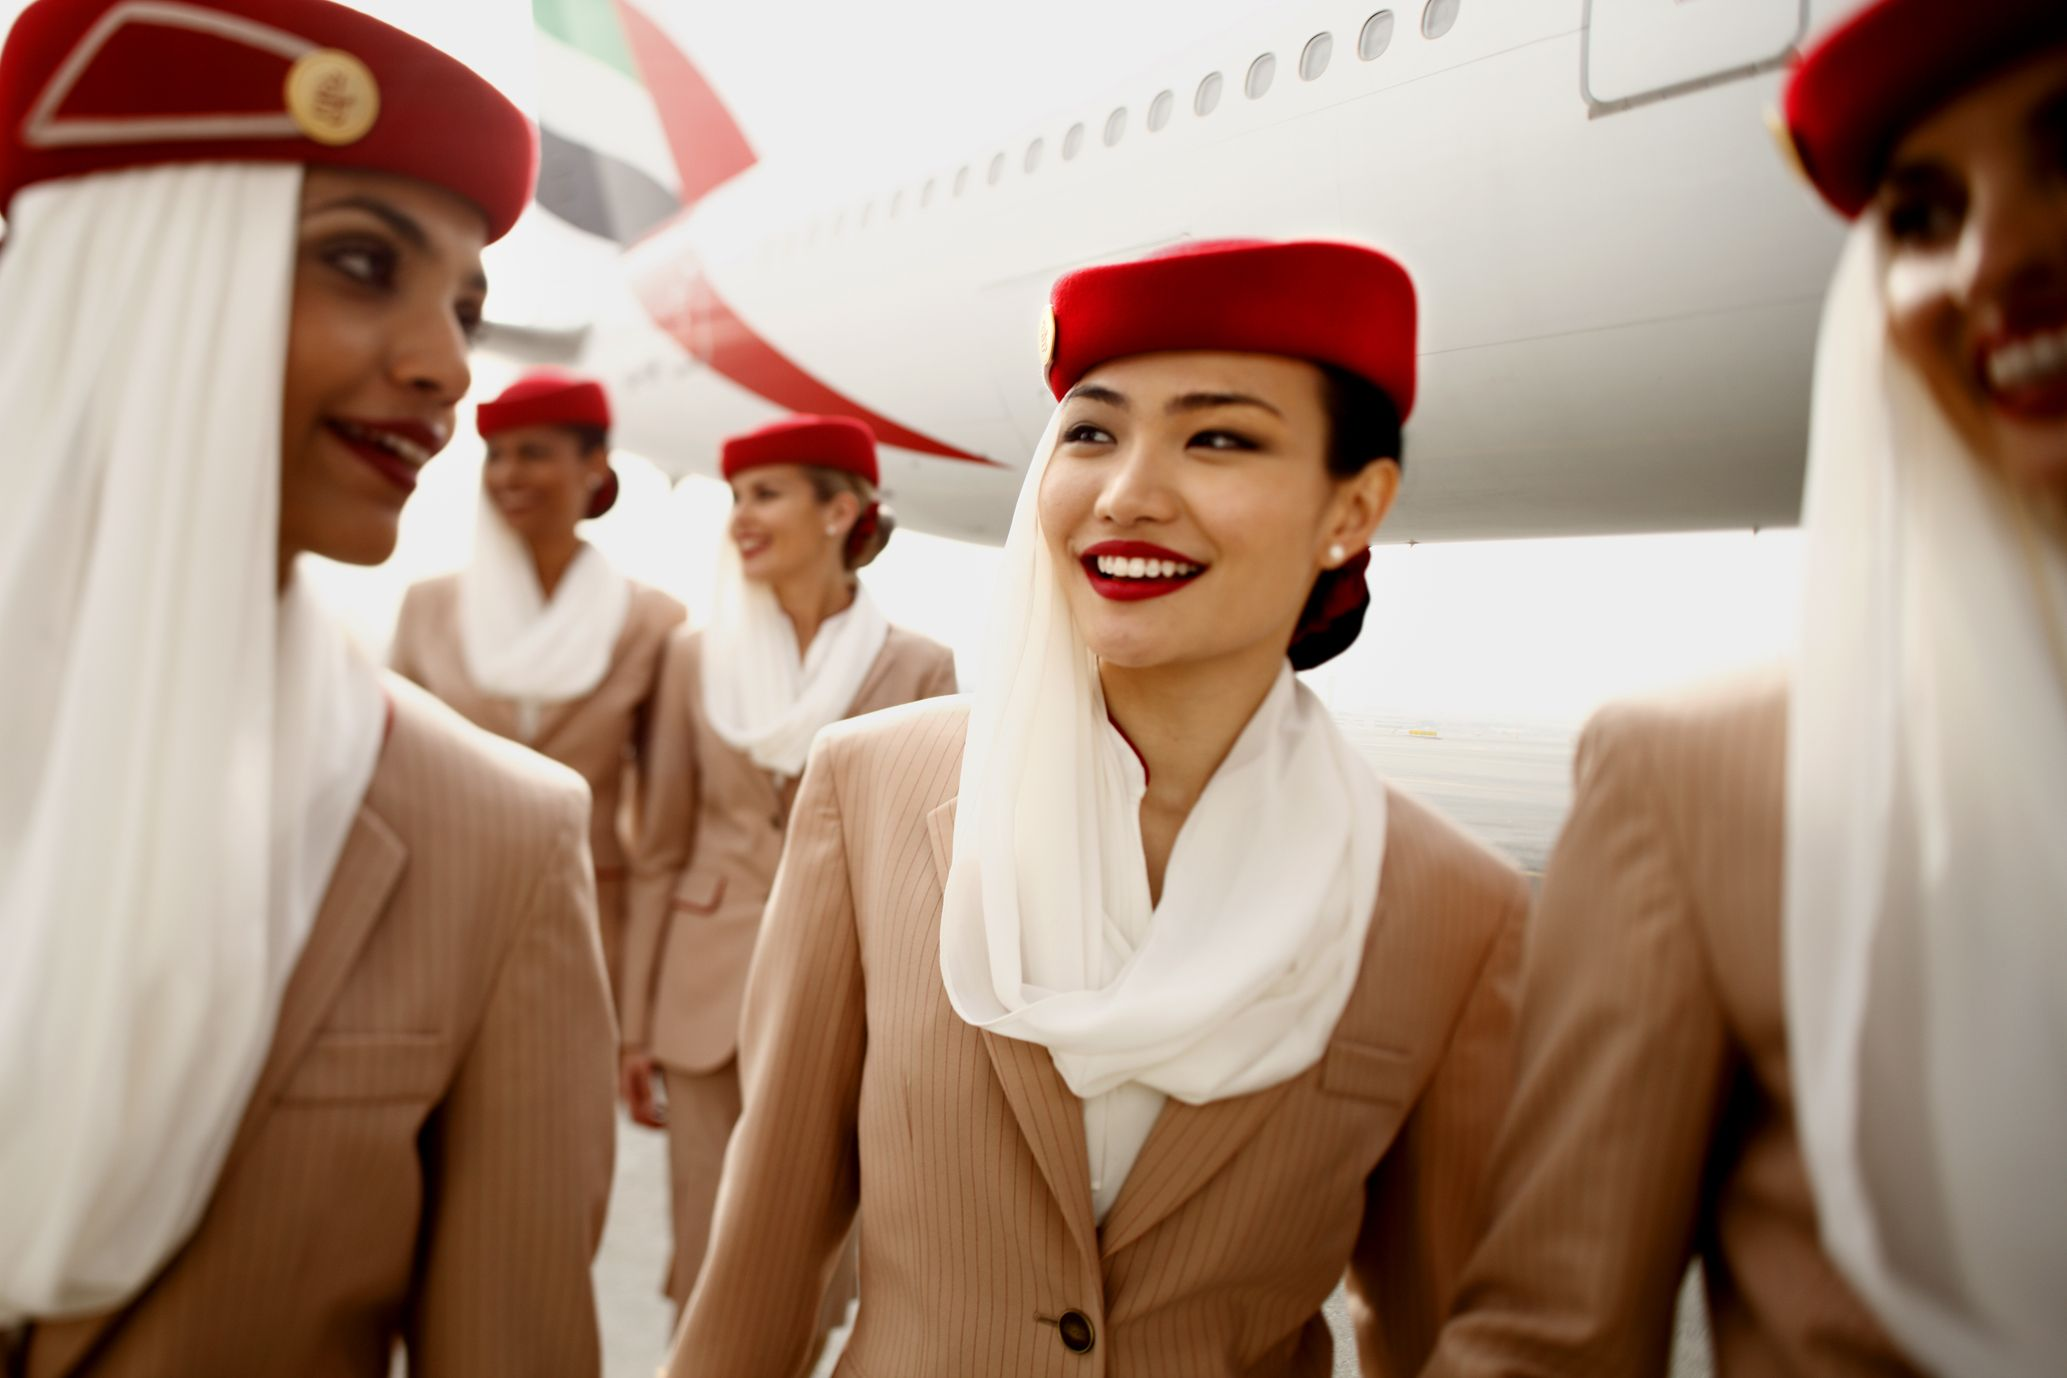 17 Best images about Emirates* on Pinterest | Assessment, A smile ...